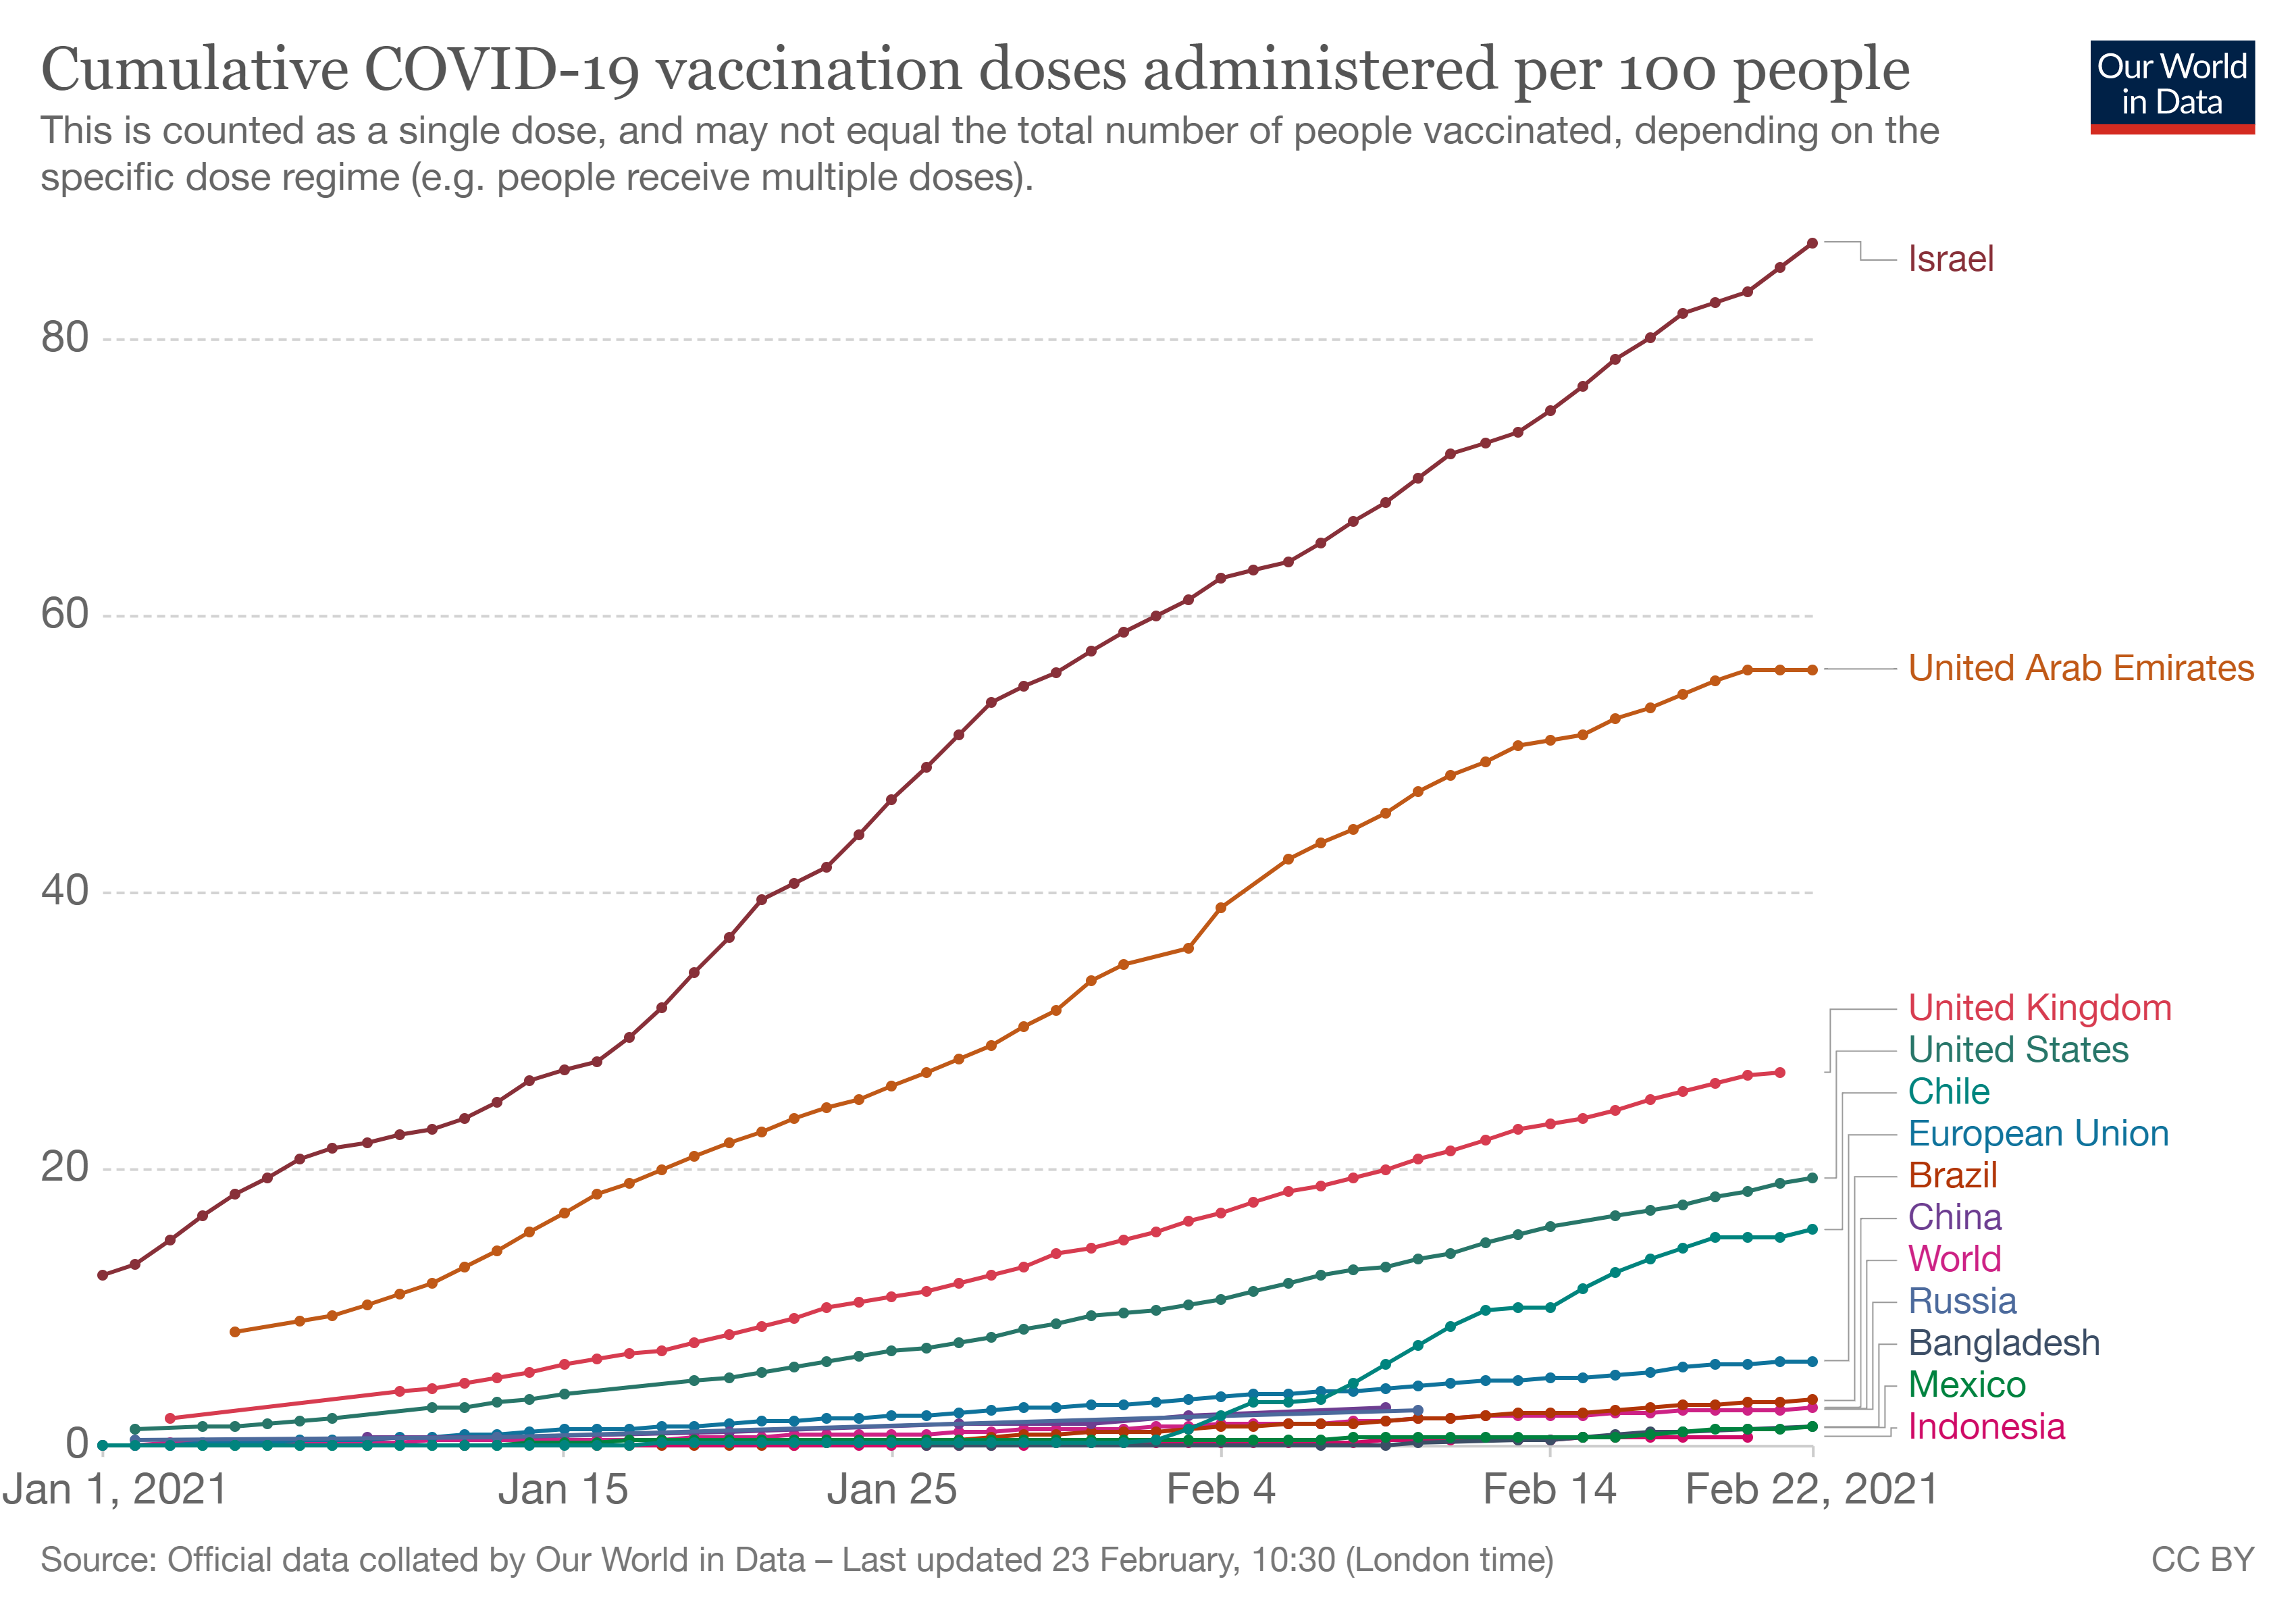 Cumulative COVID-19 vaccination doses administered per 100 people.